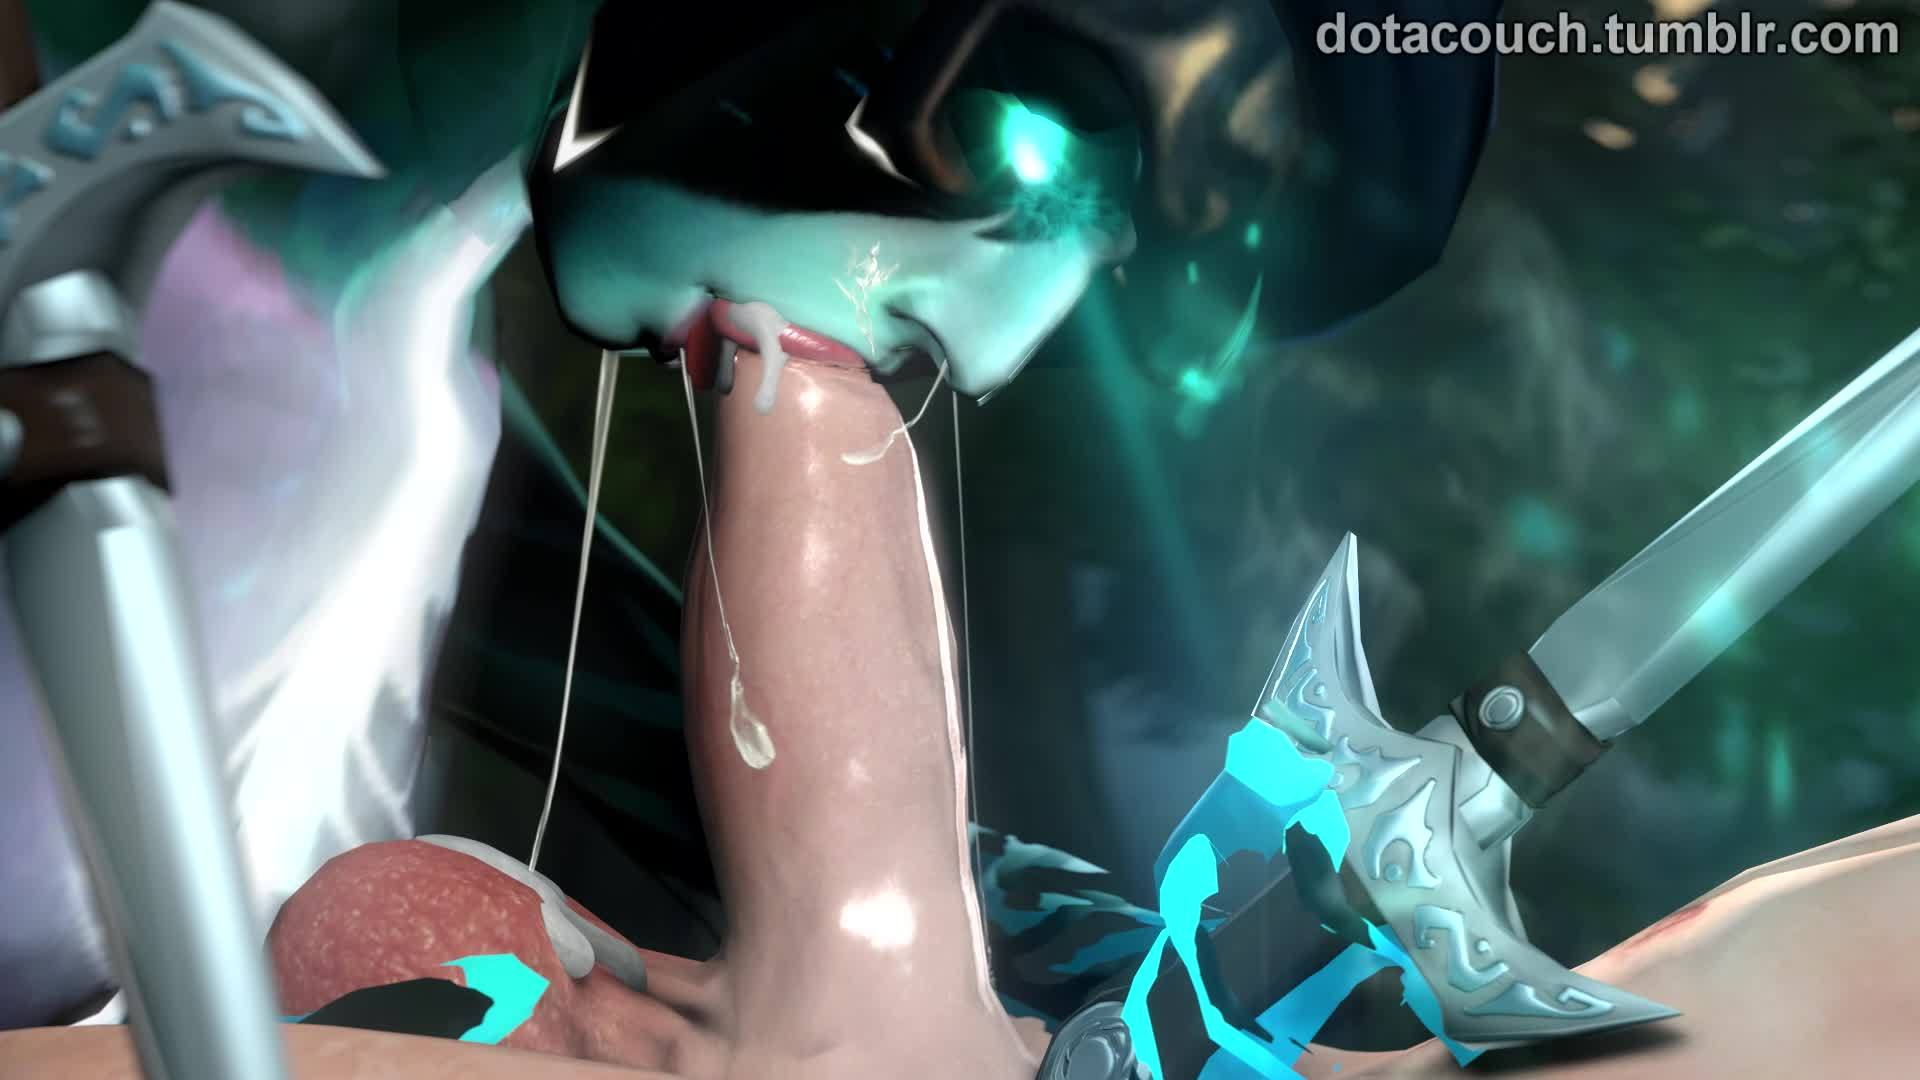 Dota porn gifs porn galleries